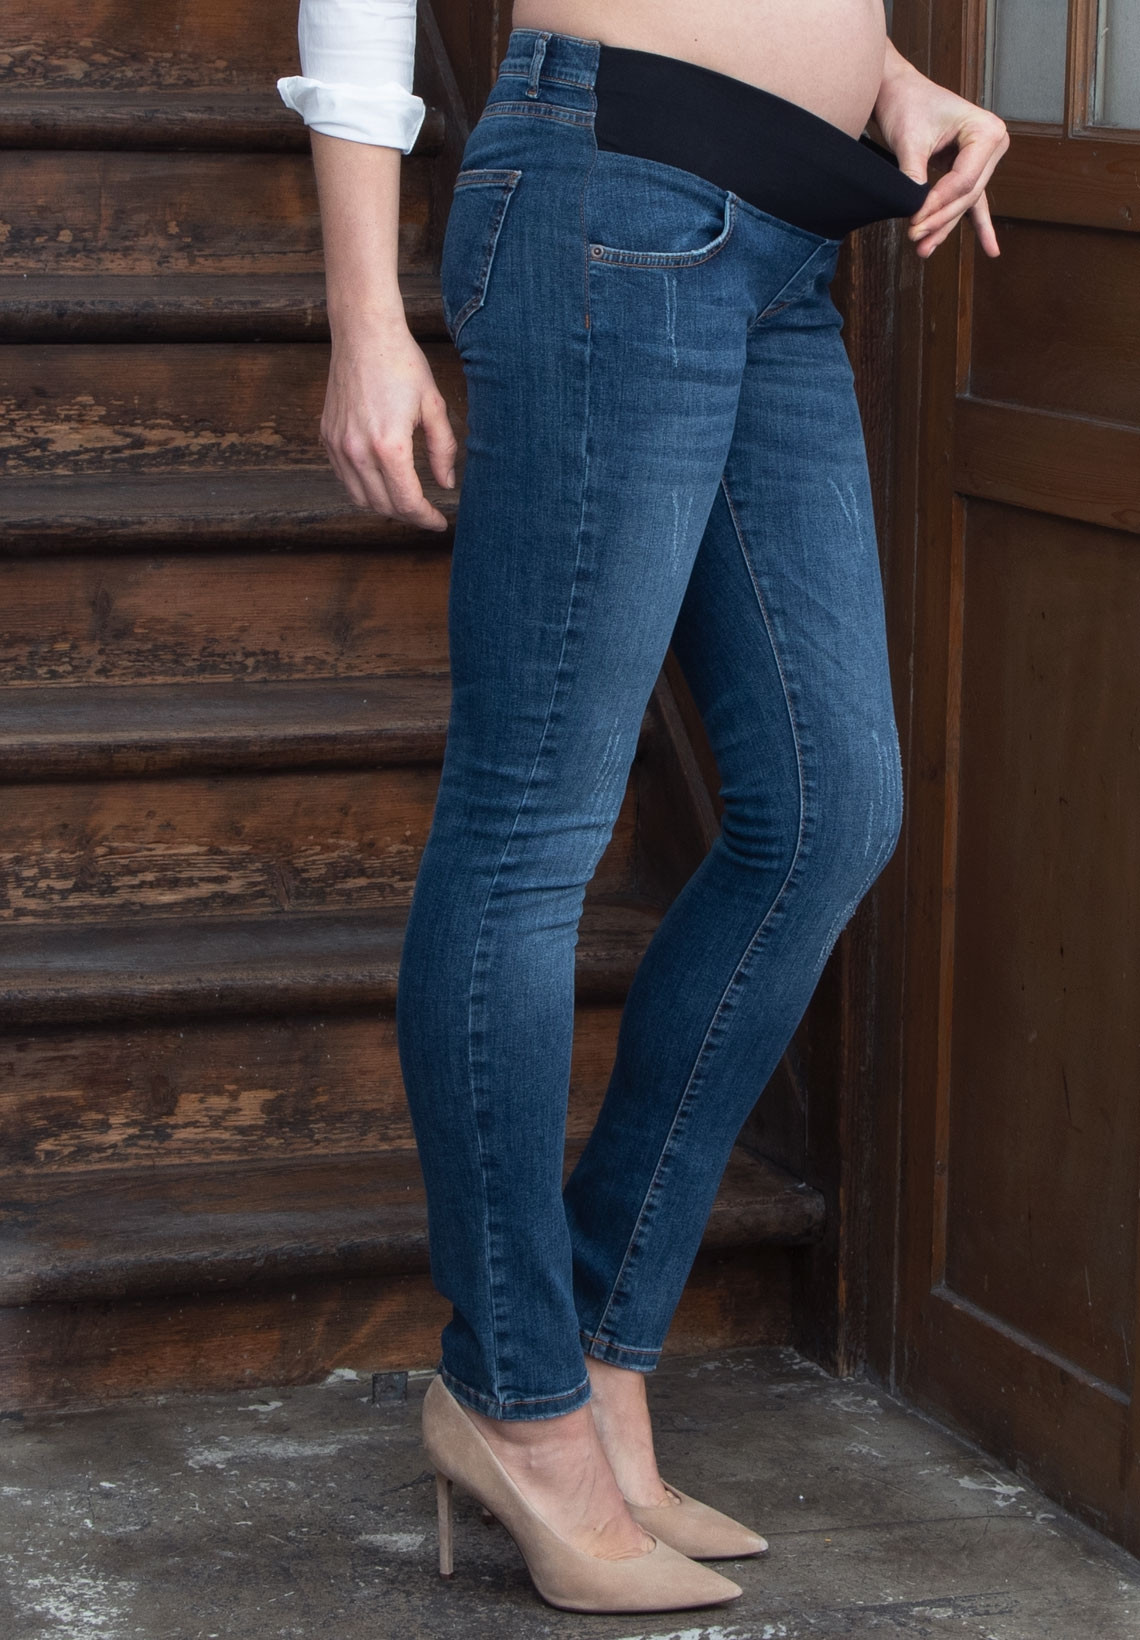 Slim Cut Maternity Jeans With Under Bump Band James Deluxe Denim